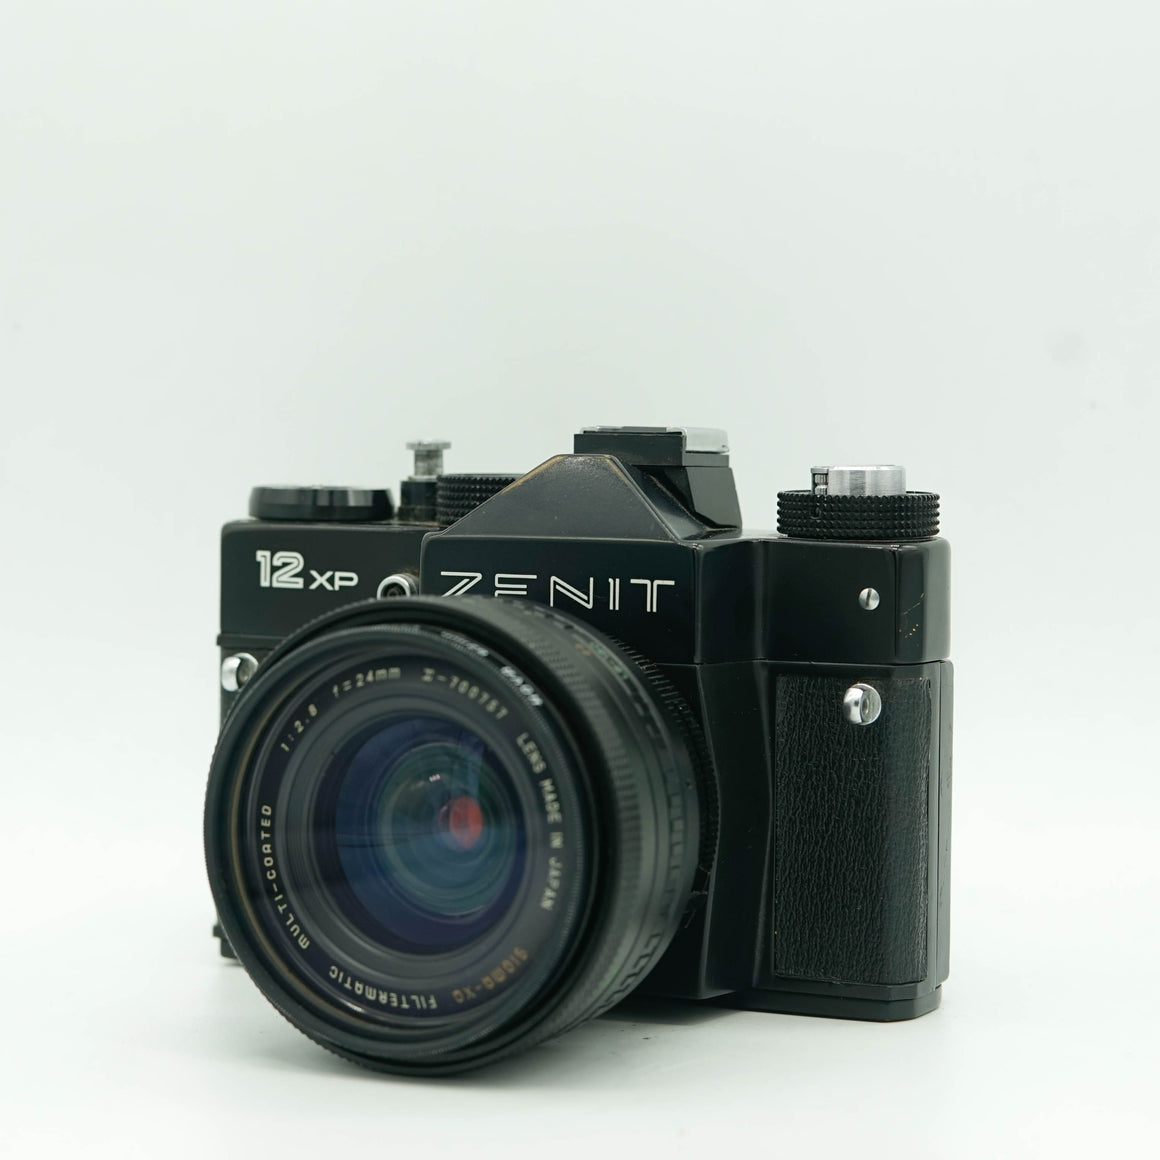 Zenit 12XP SLR with Sigma-XQ Filtermatic Multi-Coated 24mm f/2.8 Lens